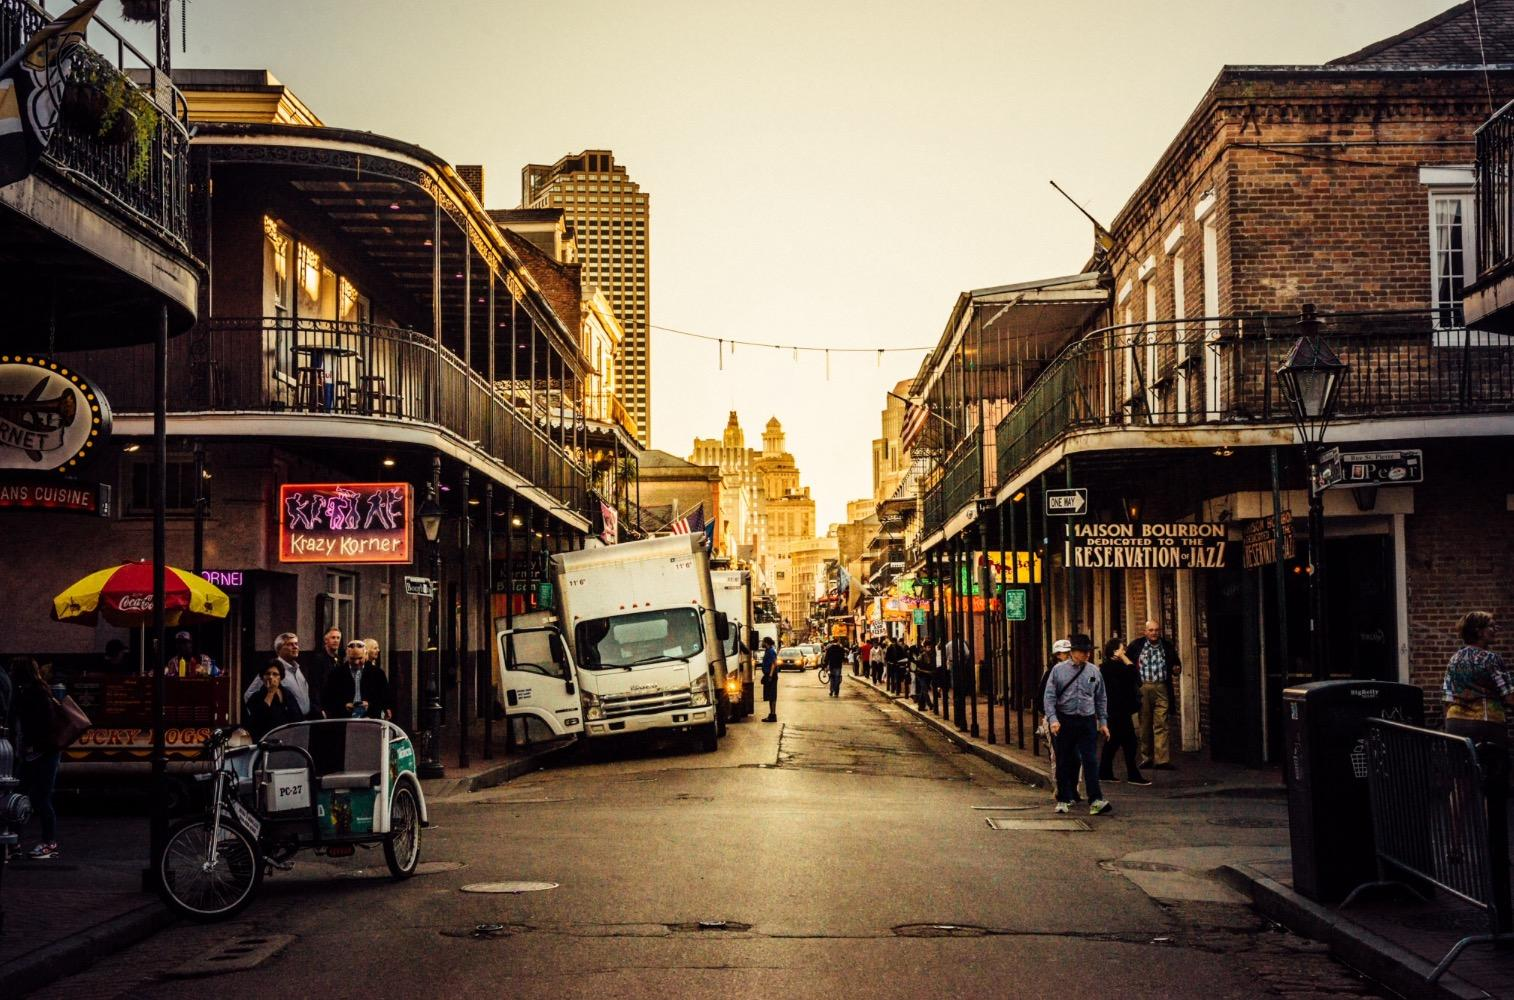 Stuart Hall and Convent students spent a week in New Orleans, attempting to make these streets a better place.